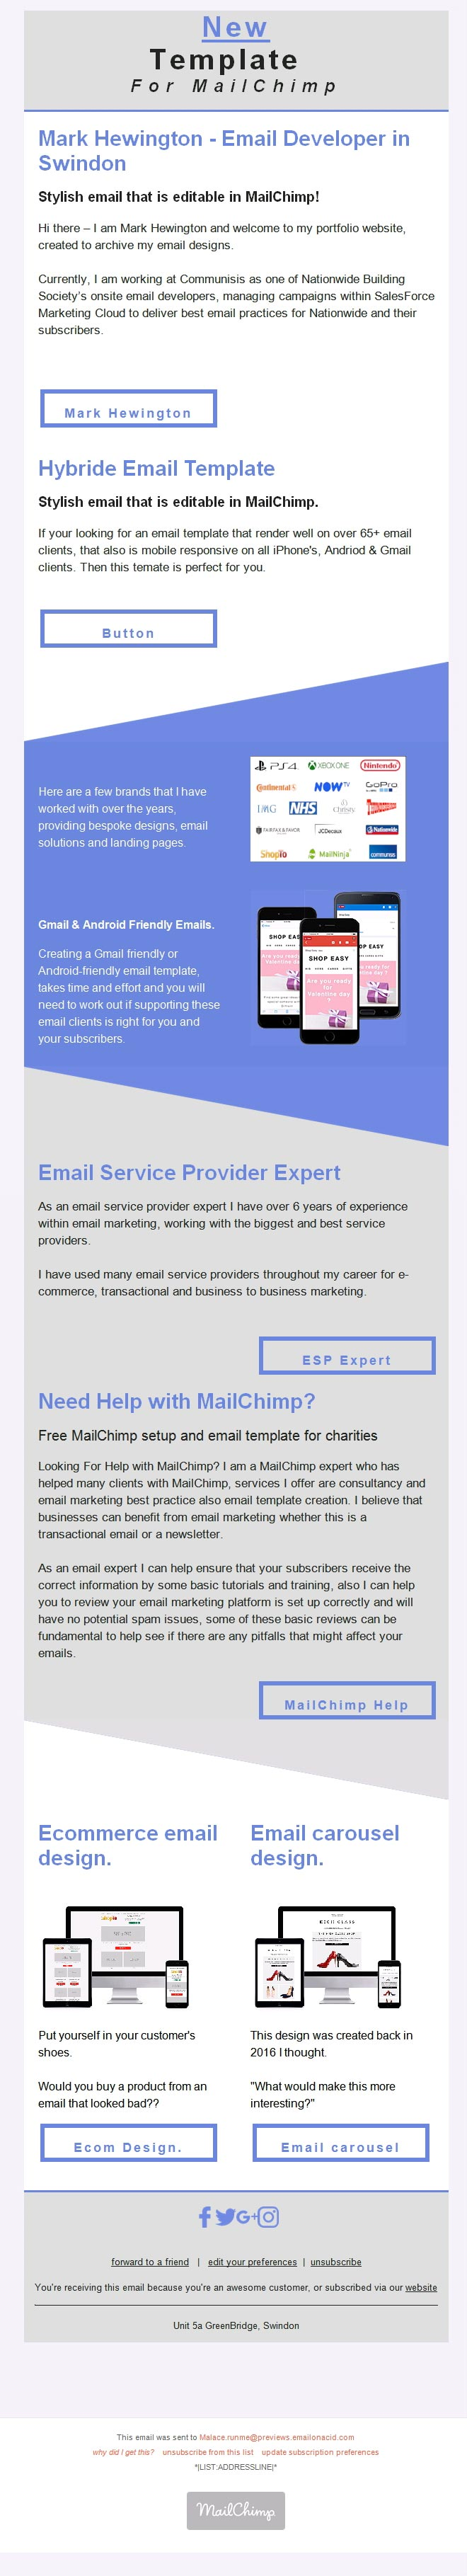 Outlook 2010 Windows 7 Editable MailChimp Emails